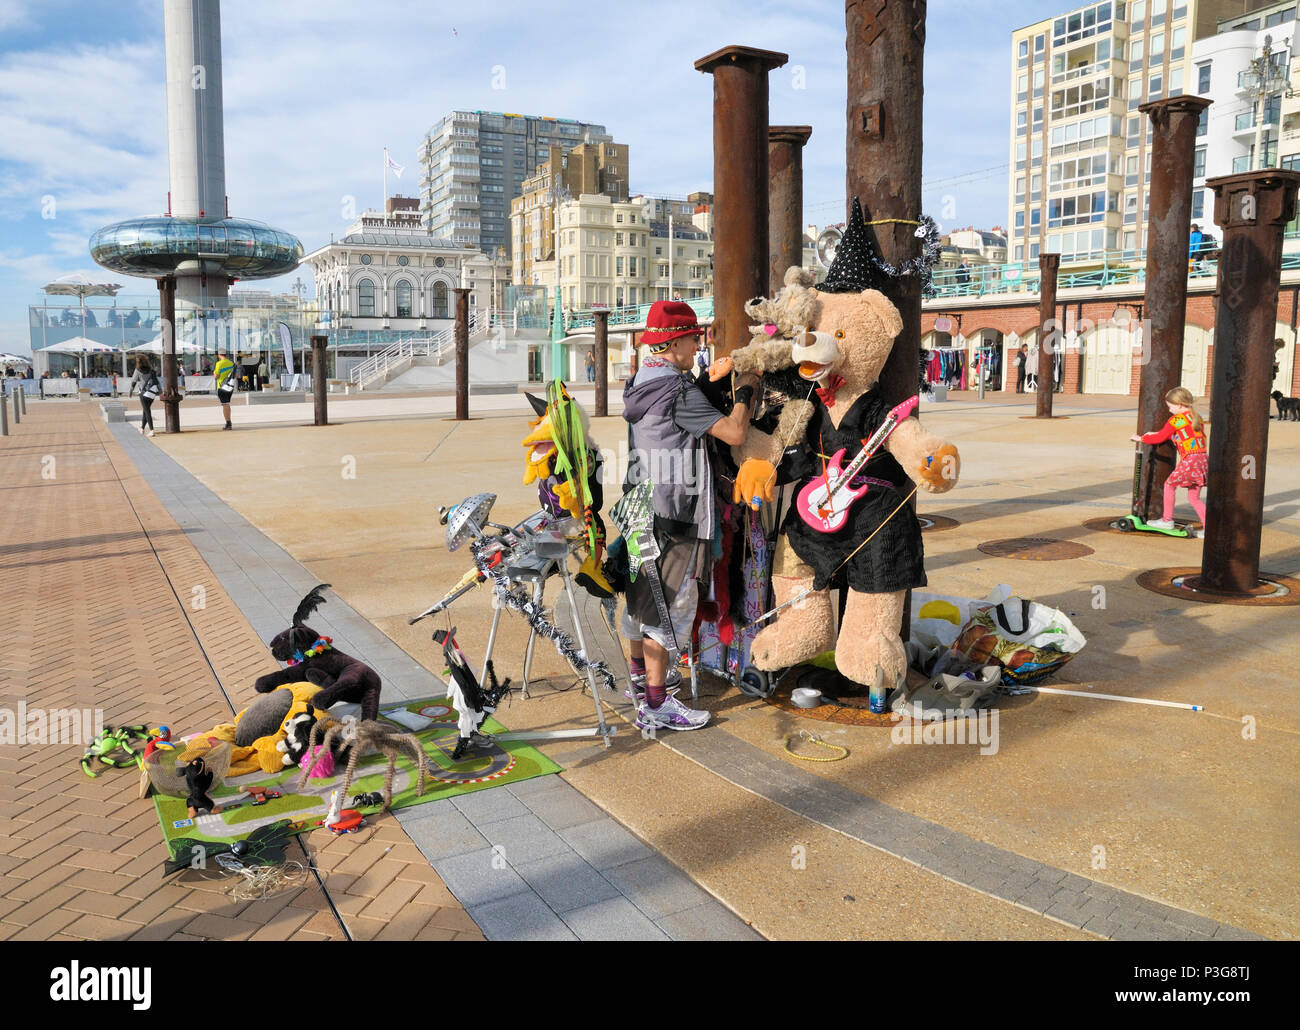 An eccentric street performer / busker on Brighton seafront with his weird and wonderful 'bandmates', East Sussex, England, UK - Stock Image